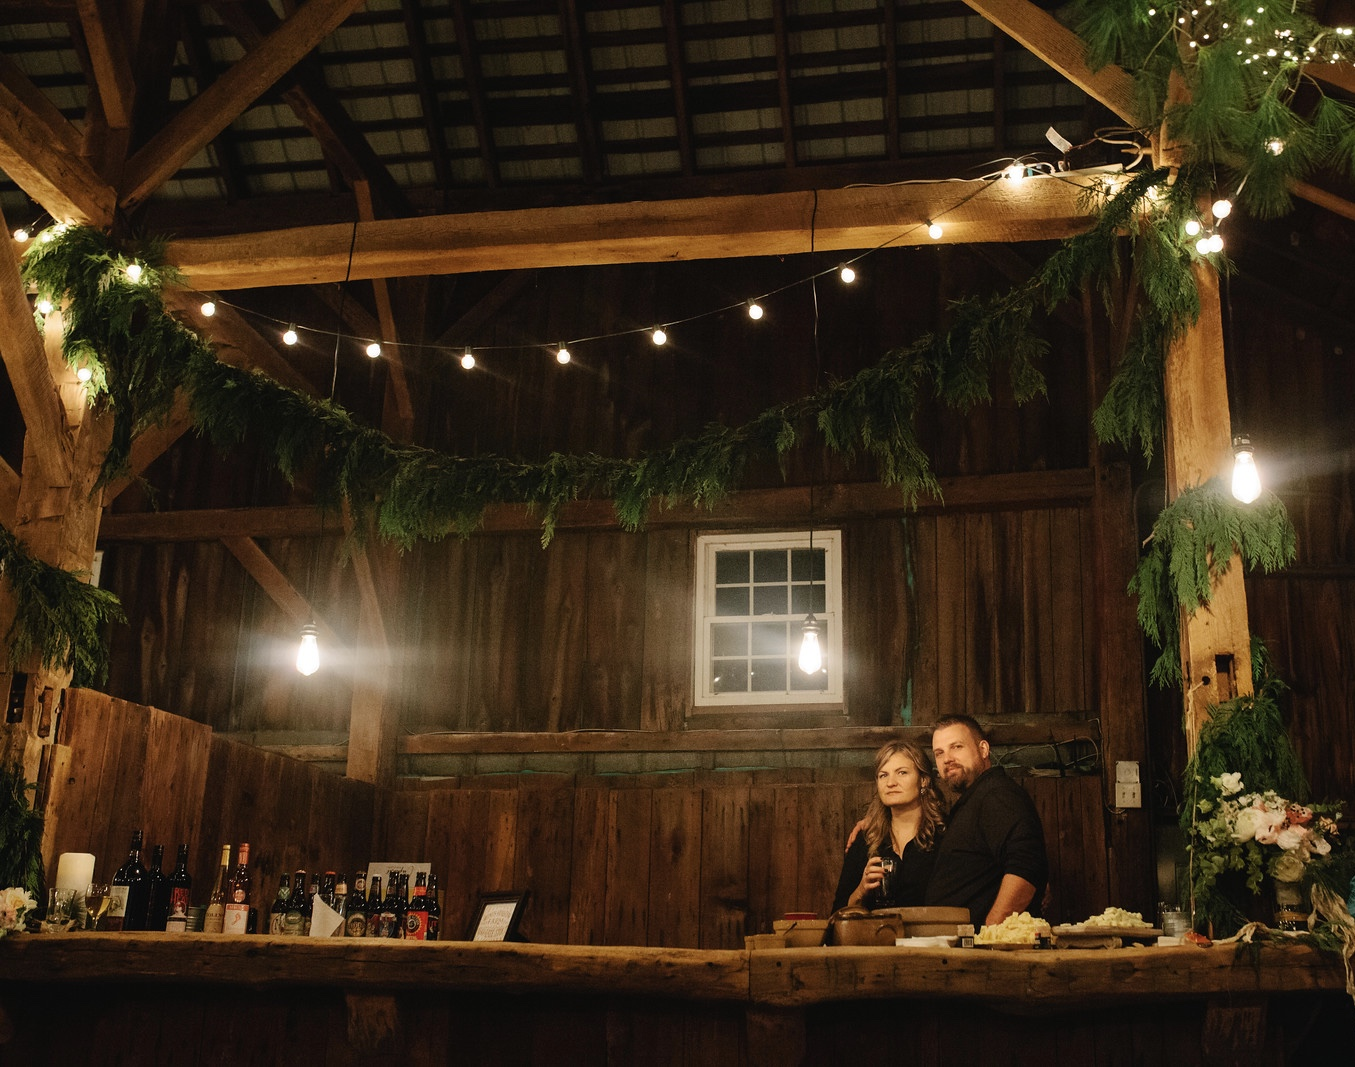 A super cool couple bartending at a winter barn reception with hanging greens